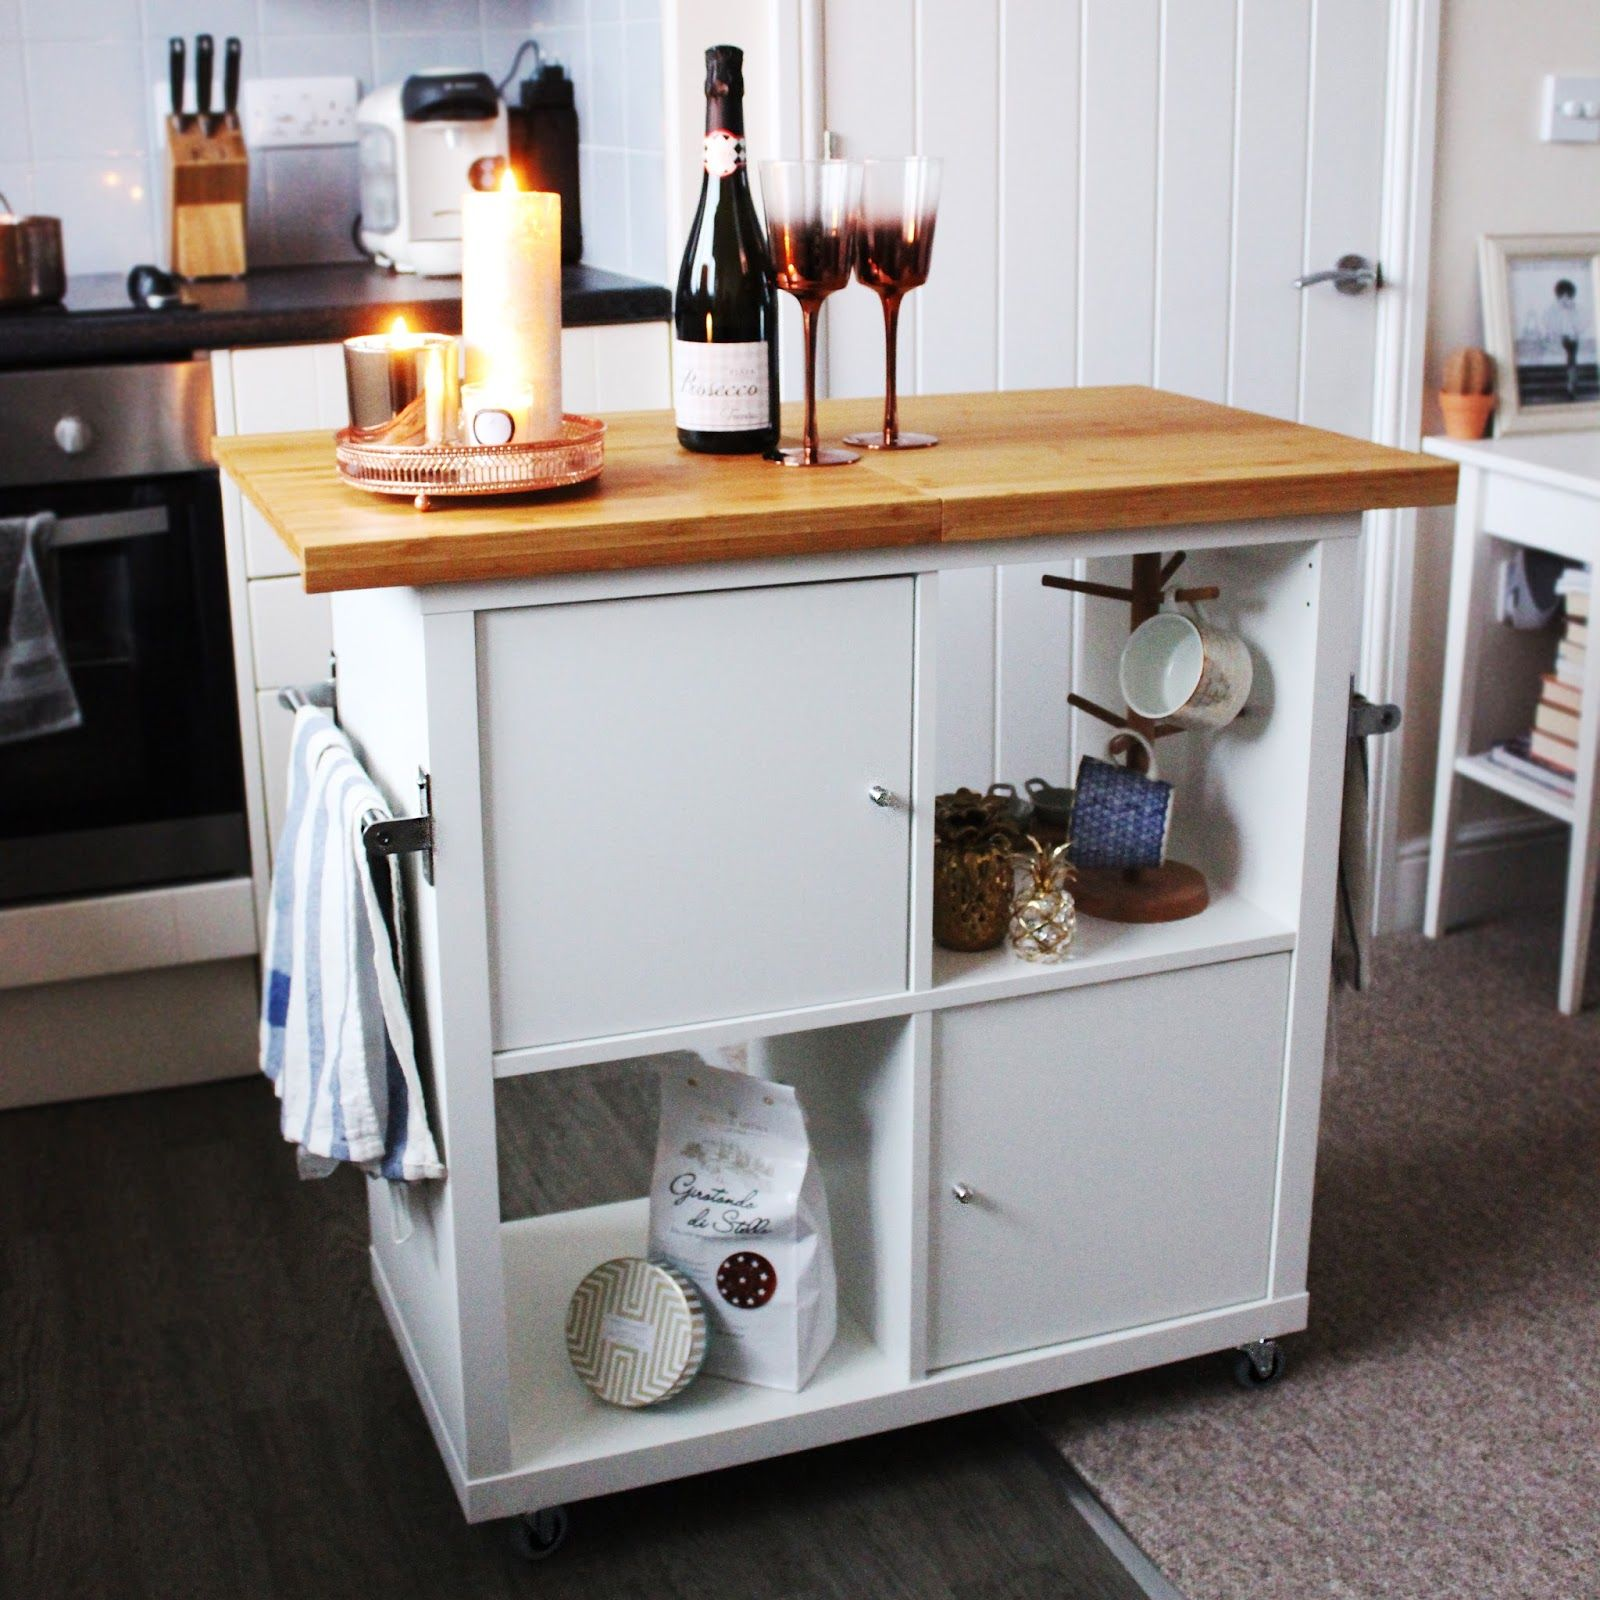 Ikea Hacks Kücheninsel Ikea Kallax Kitchen Island Hack By Jen Lou Meredith | Ikea